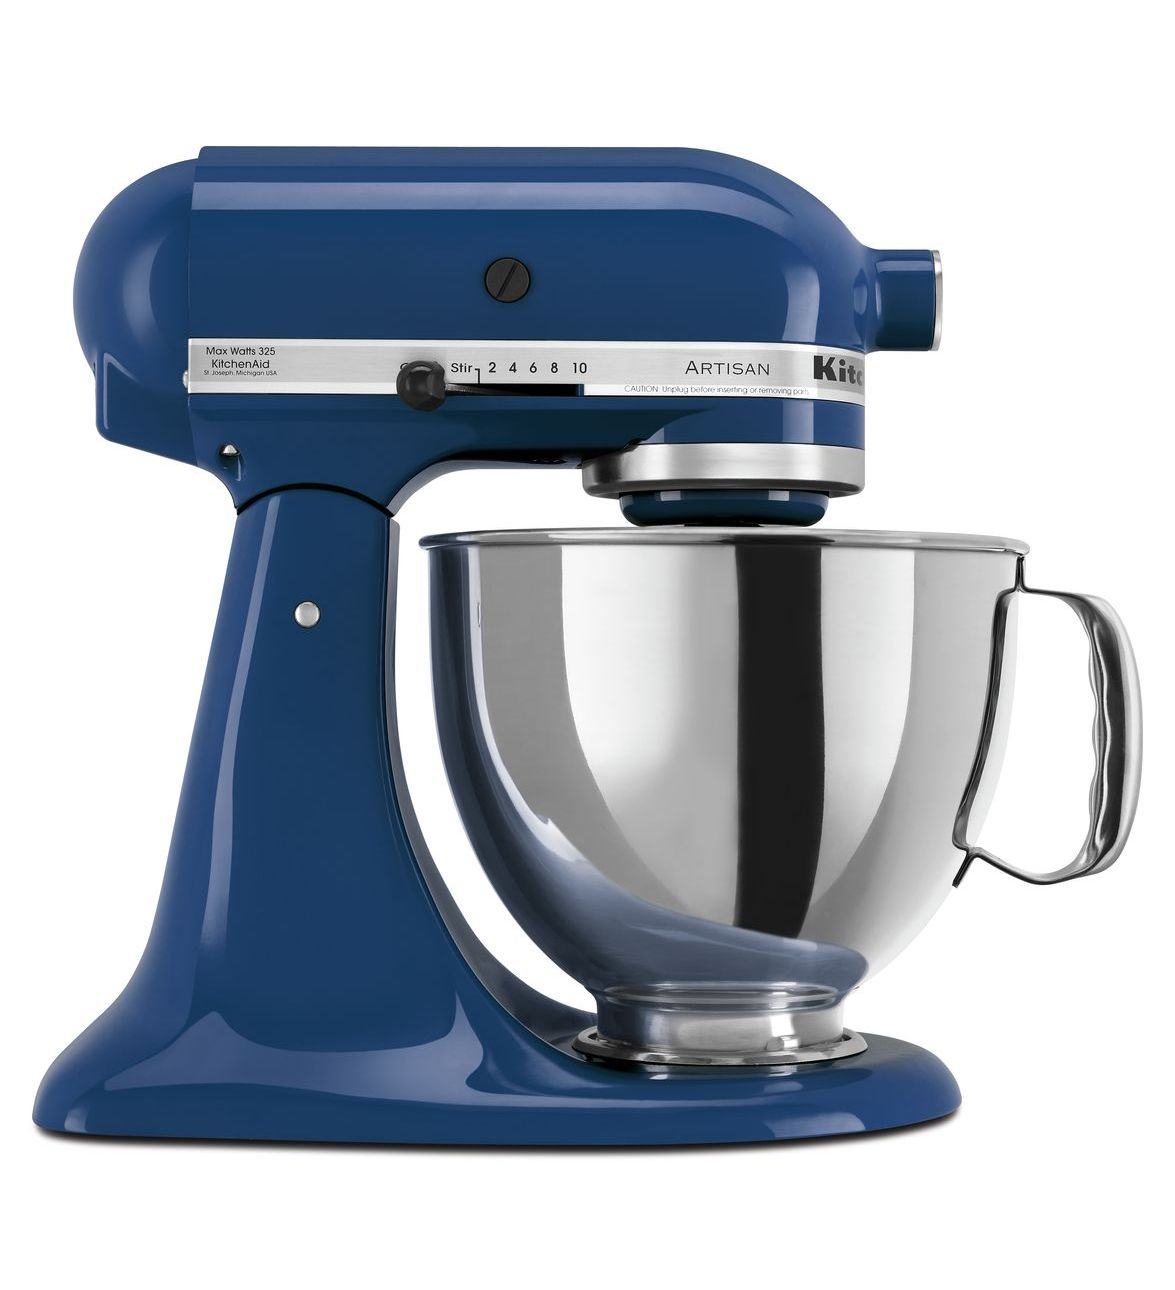 KitchenAid® Refurbished Artisan® Series 5 Quart Tilt-Head Stand Mixer, RRK150 Blue Willow